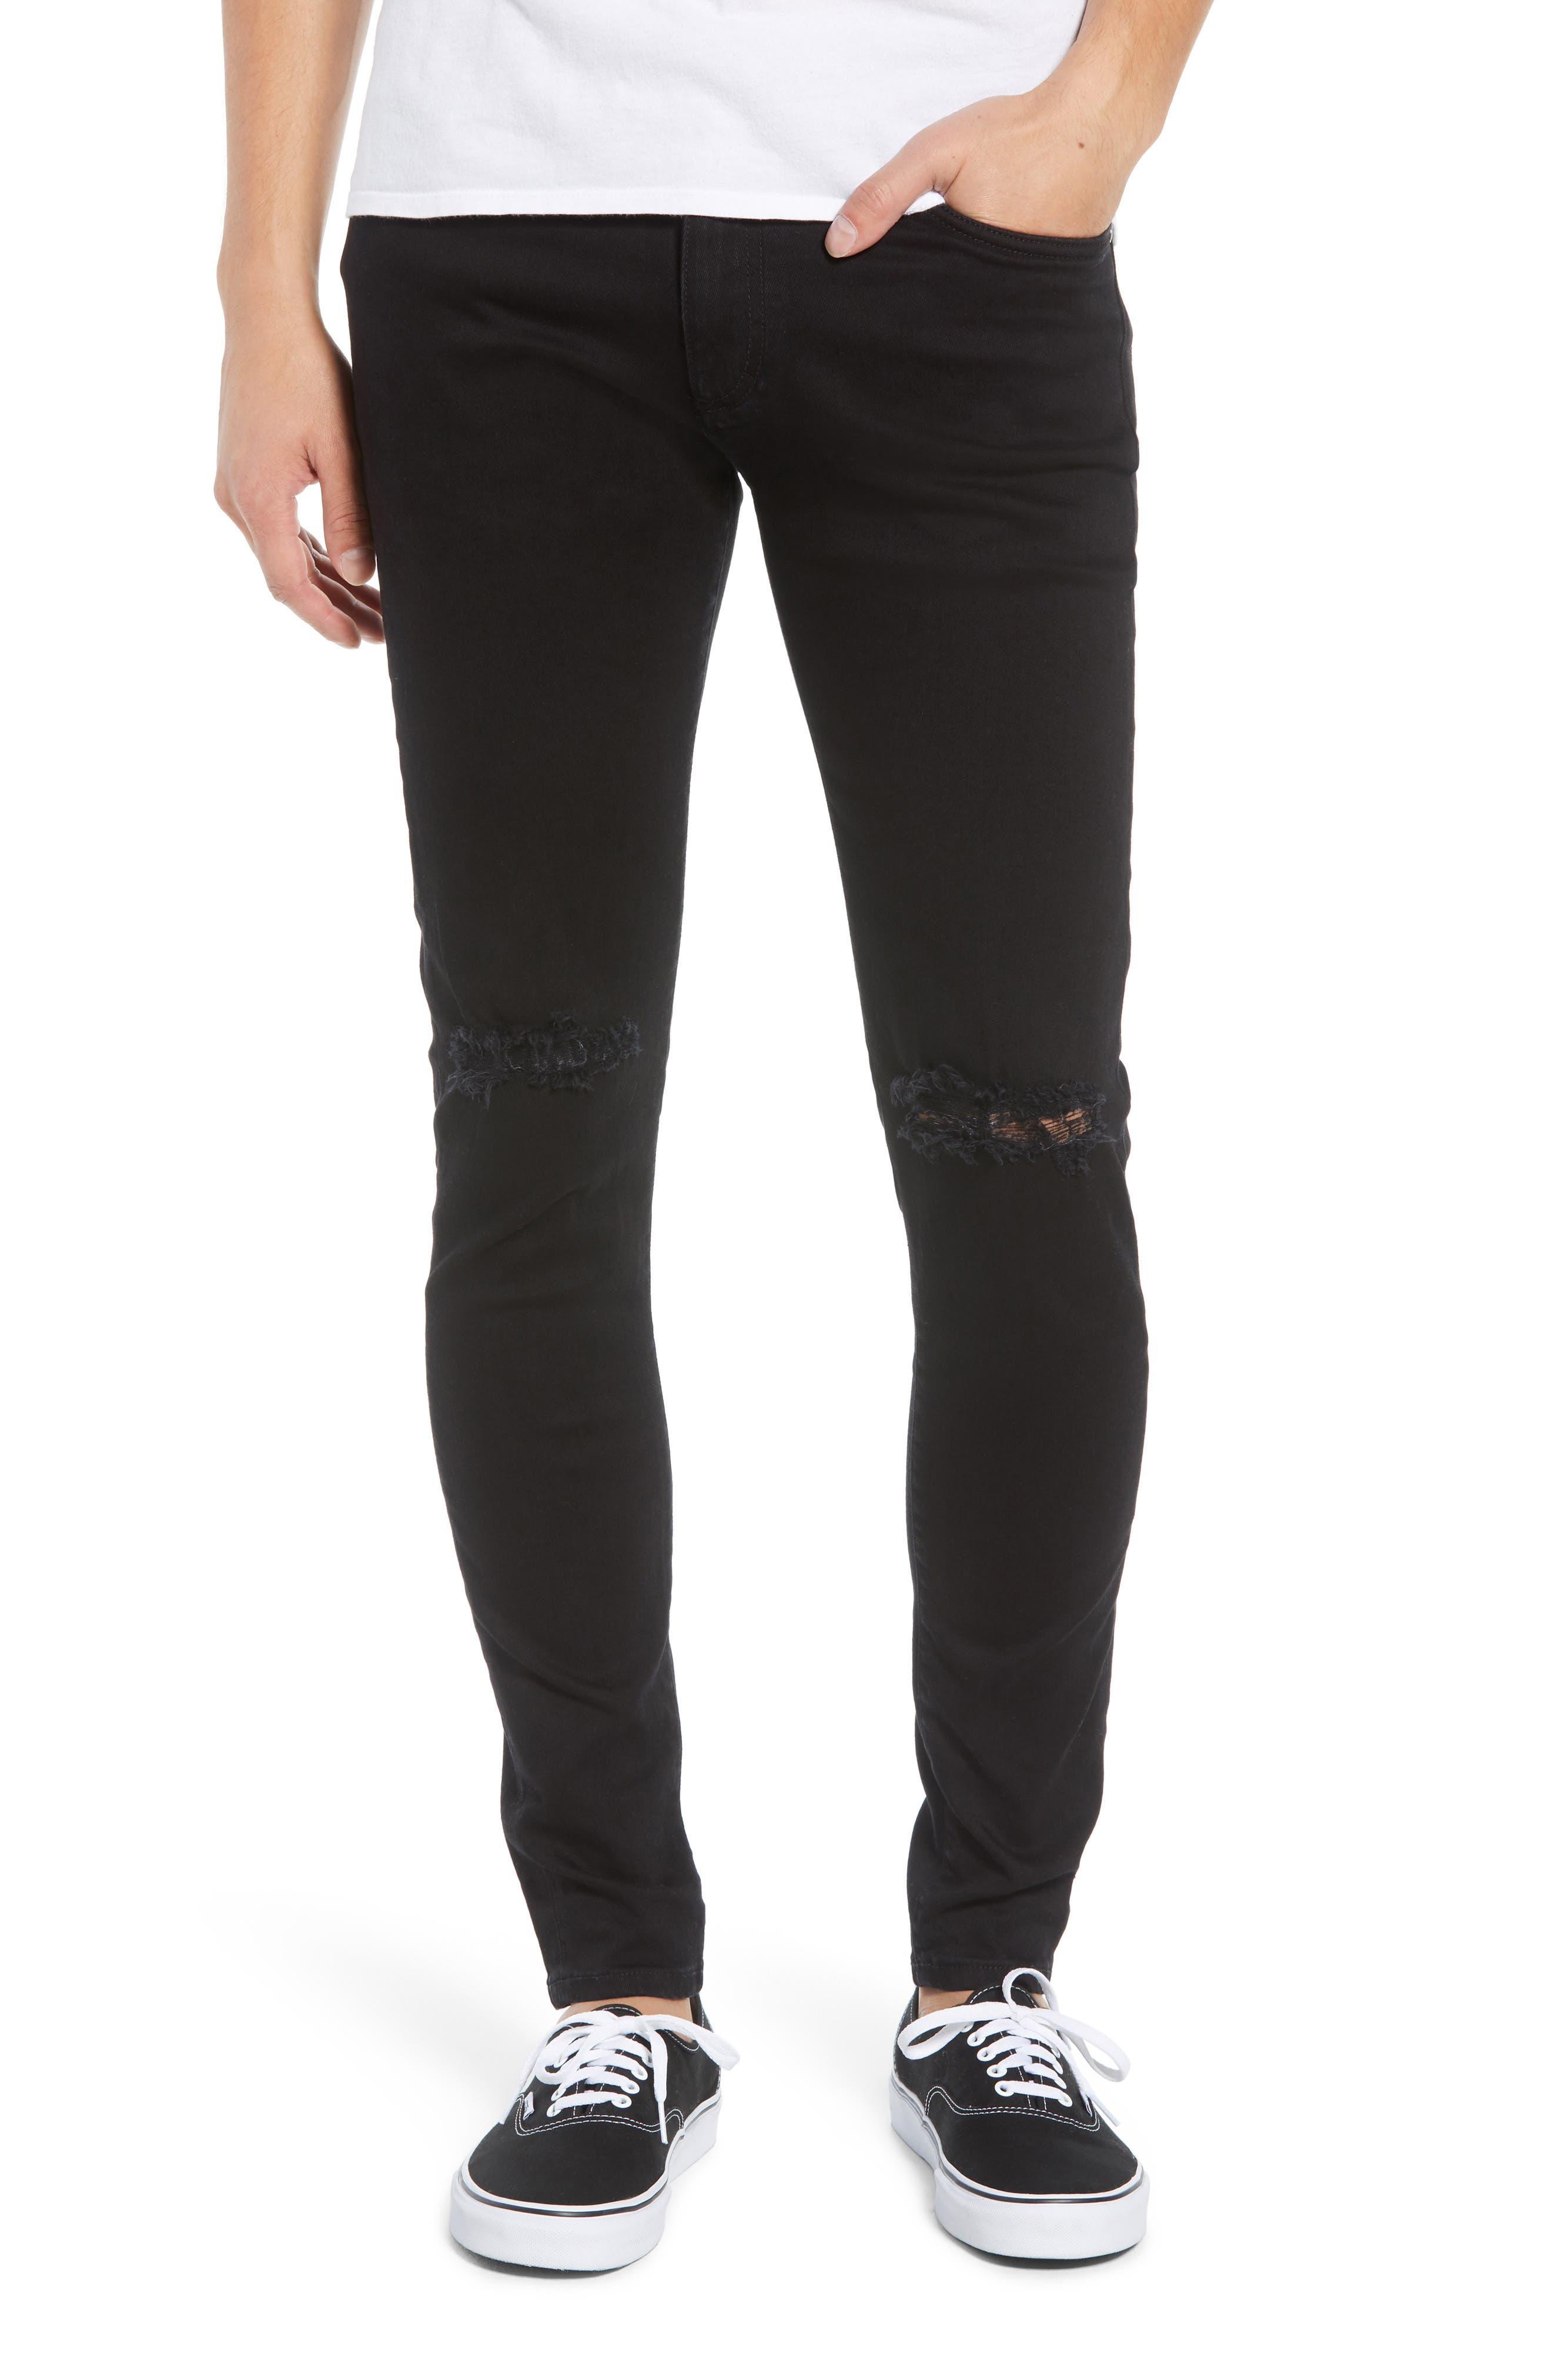 Destroyer Ripped Slim Fit Jeans,                             Main thumbnail 1, color,                             BLACK